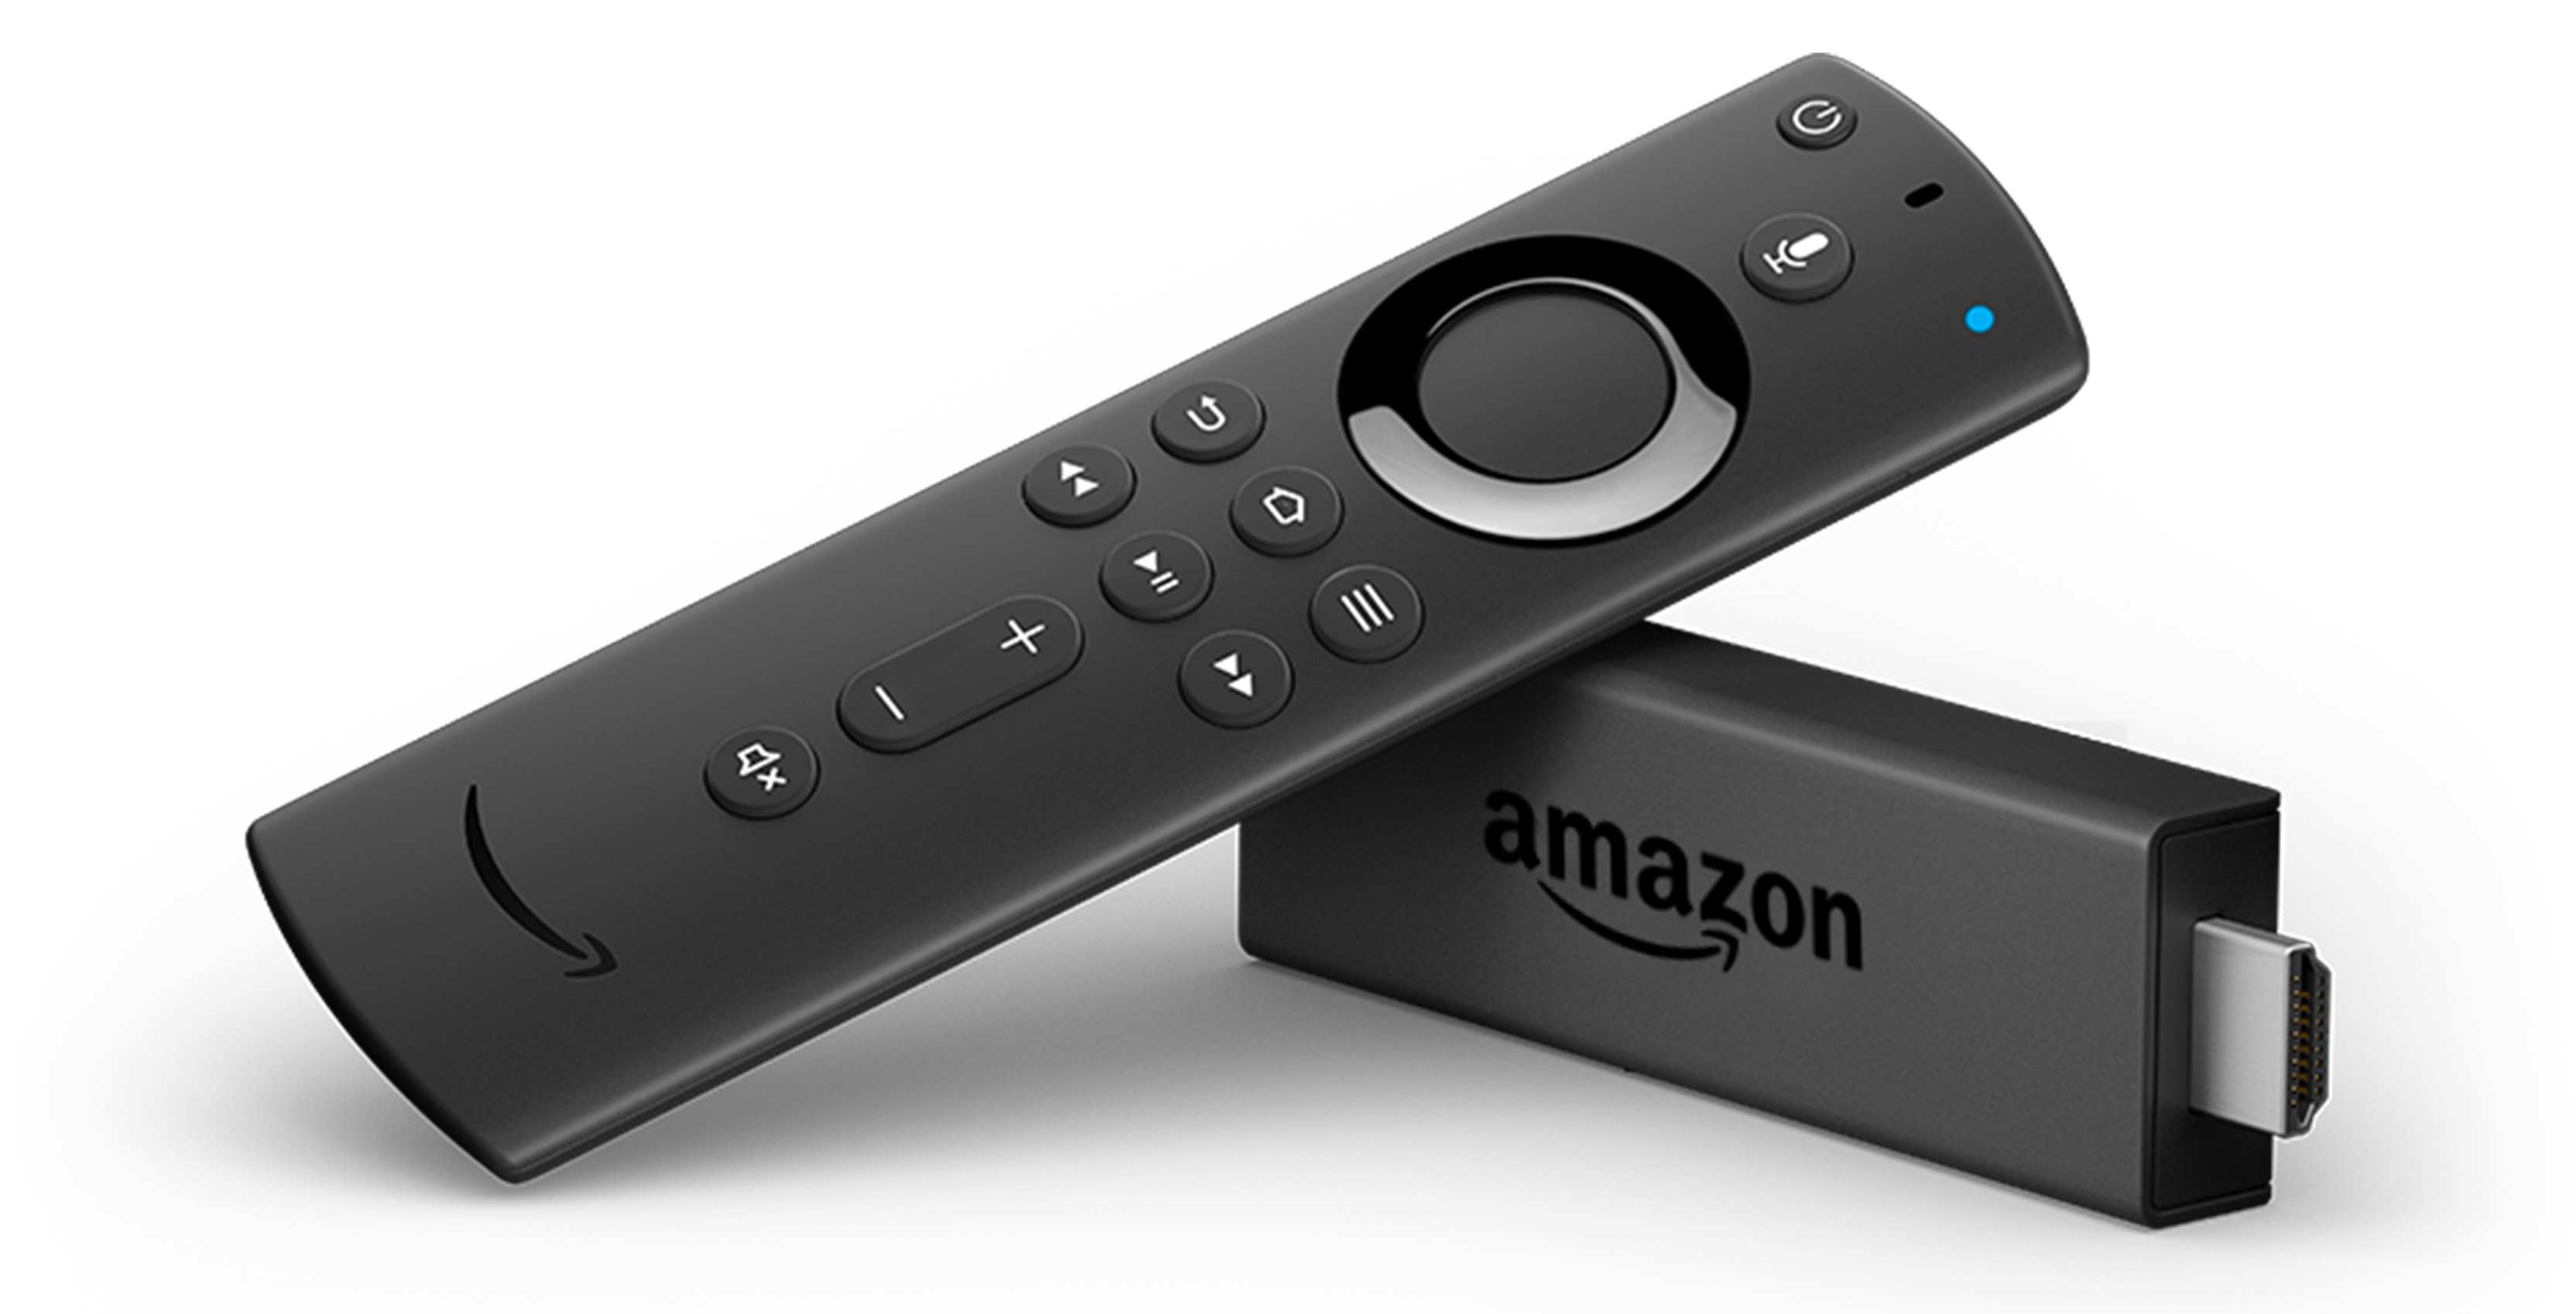 Amazon adds its new Alexa Voice Remote to its Fire TV Stick